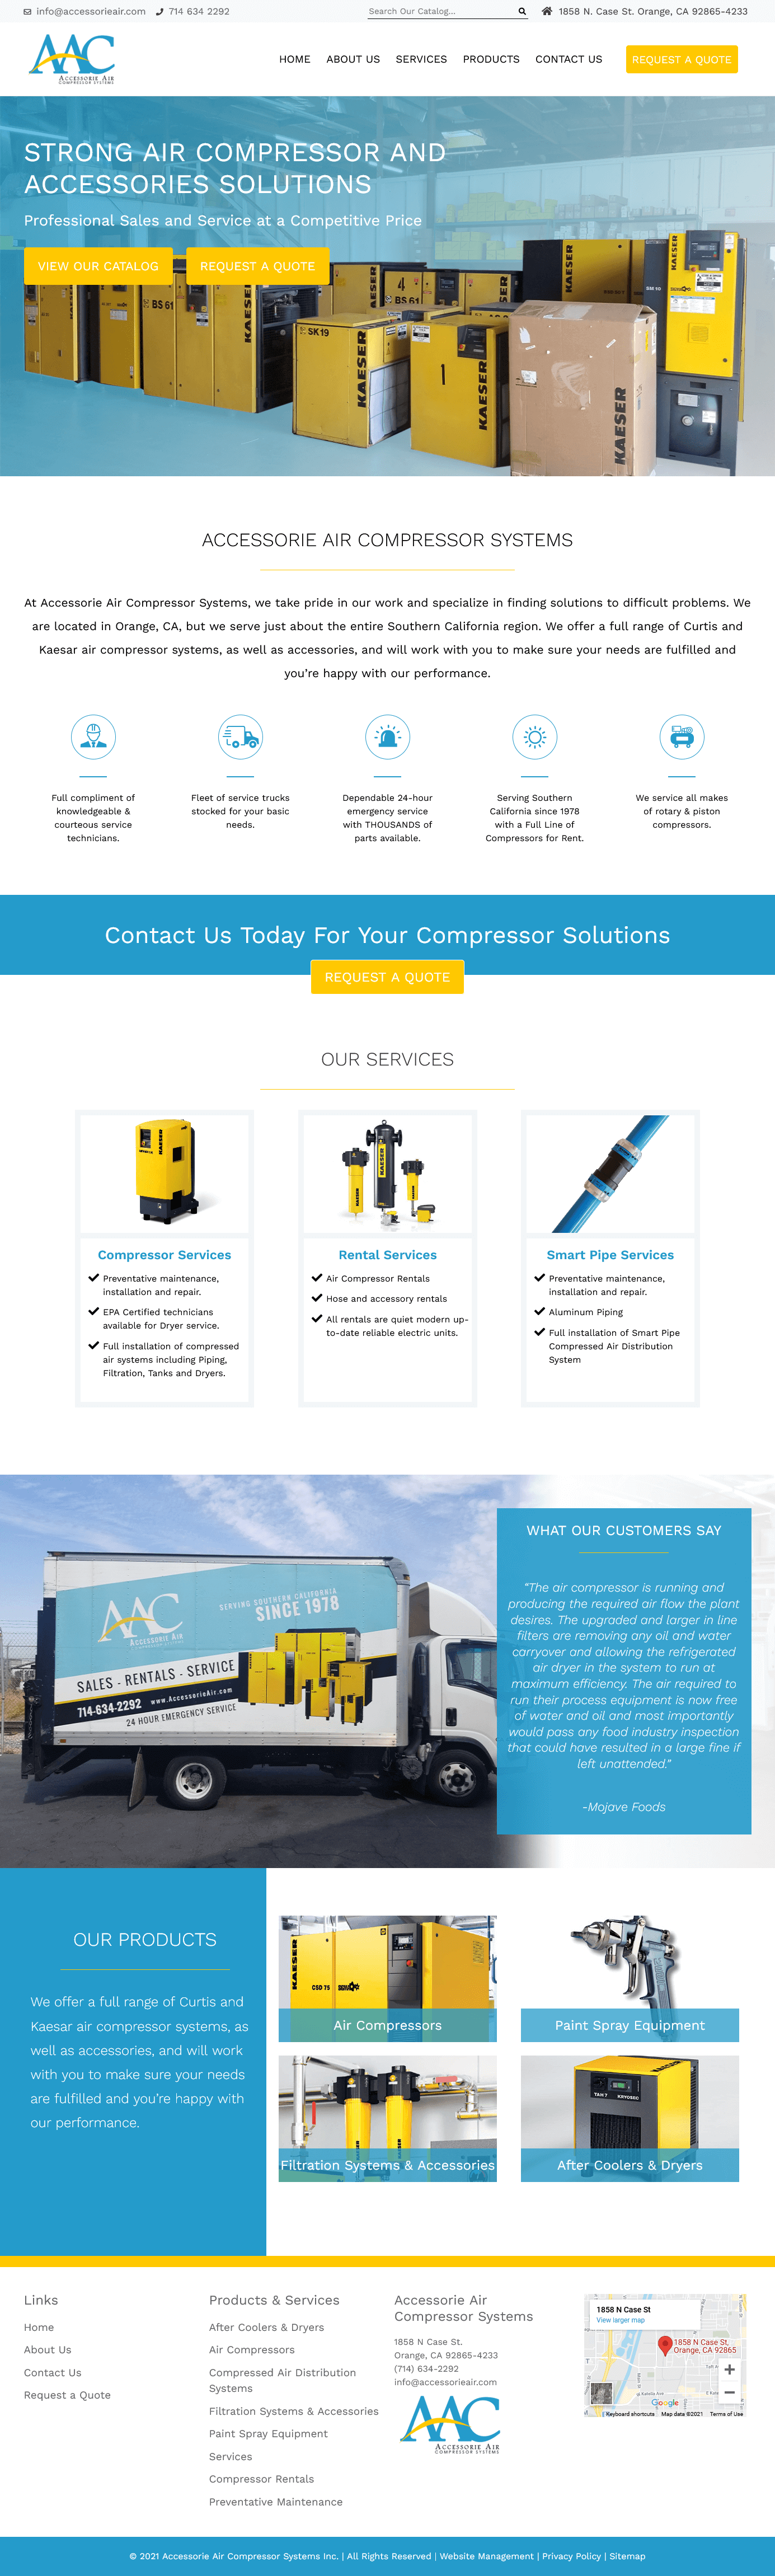 Accessorie Air Compressor Systems Website